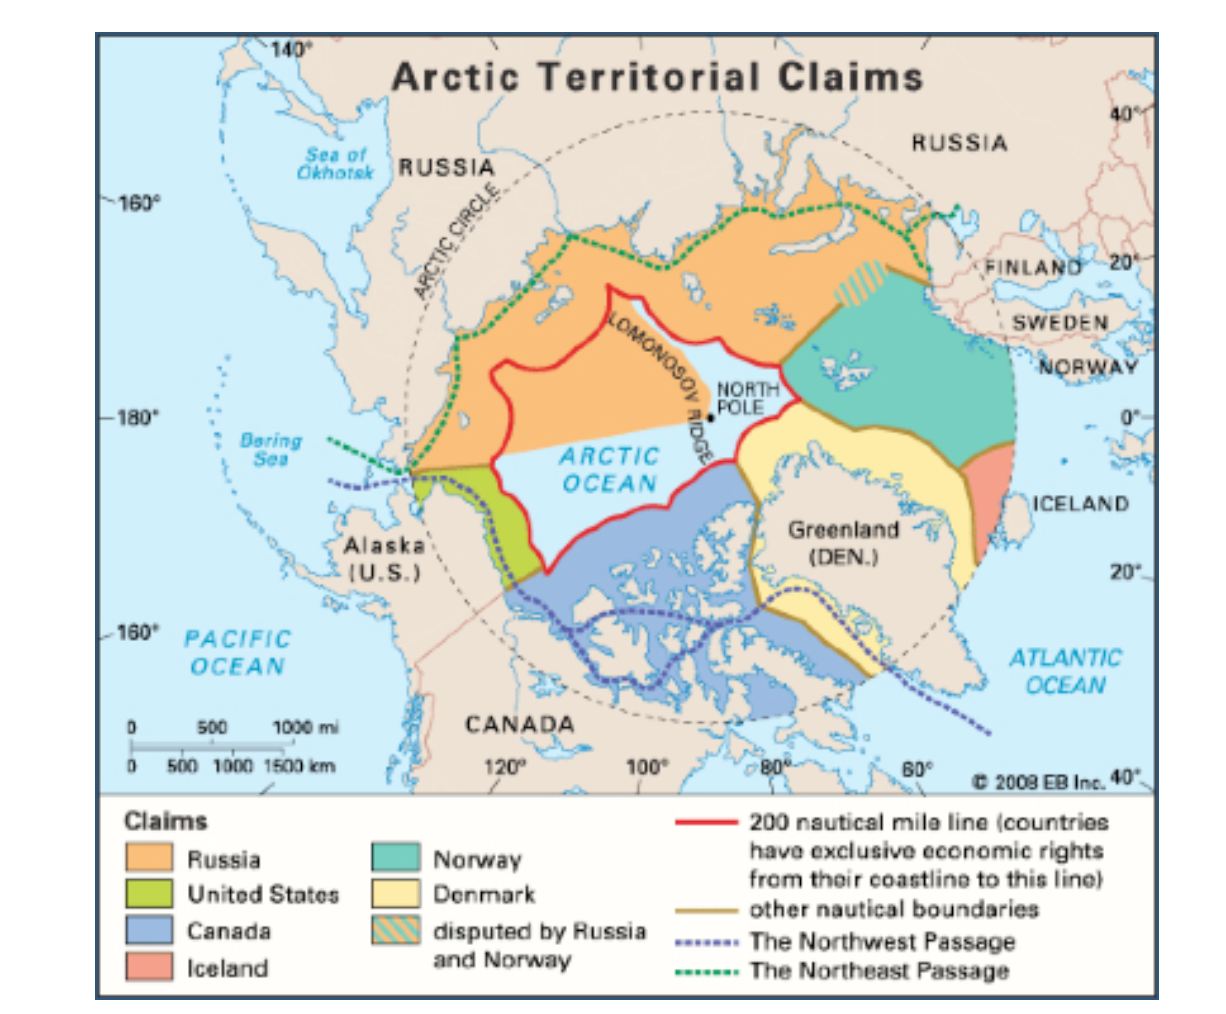 Arctic Teritorial Claims